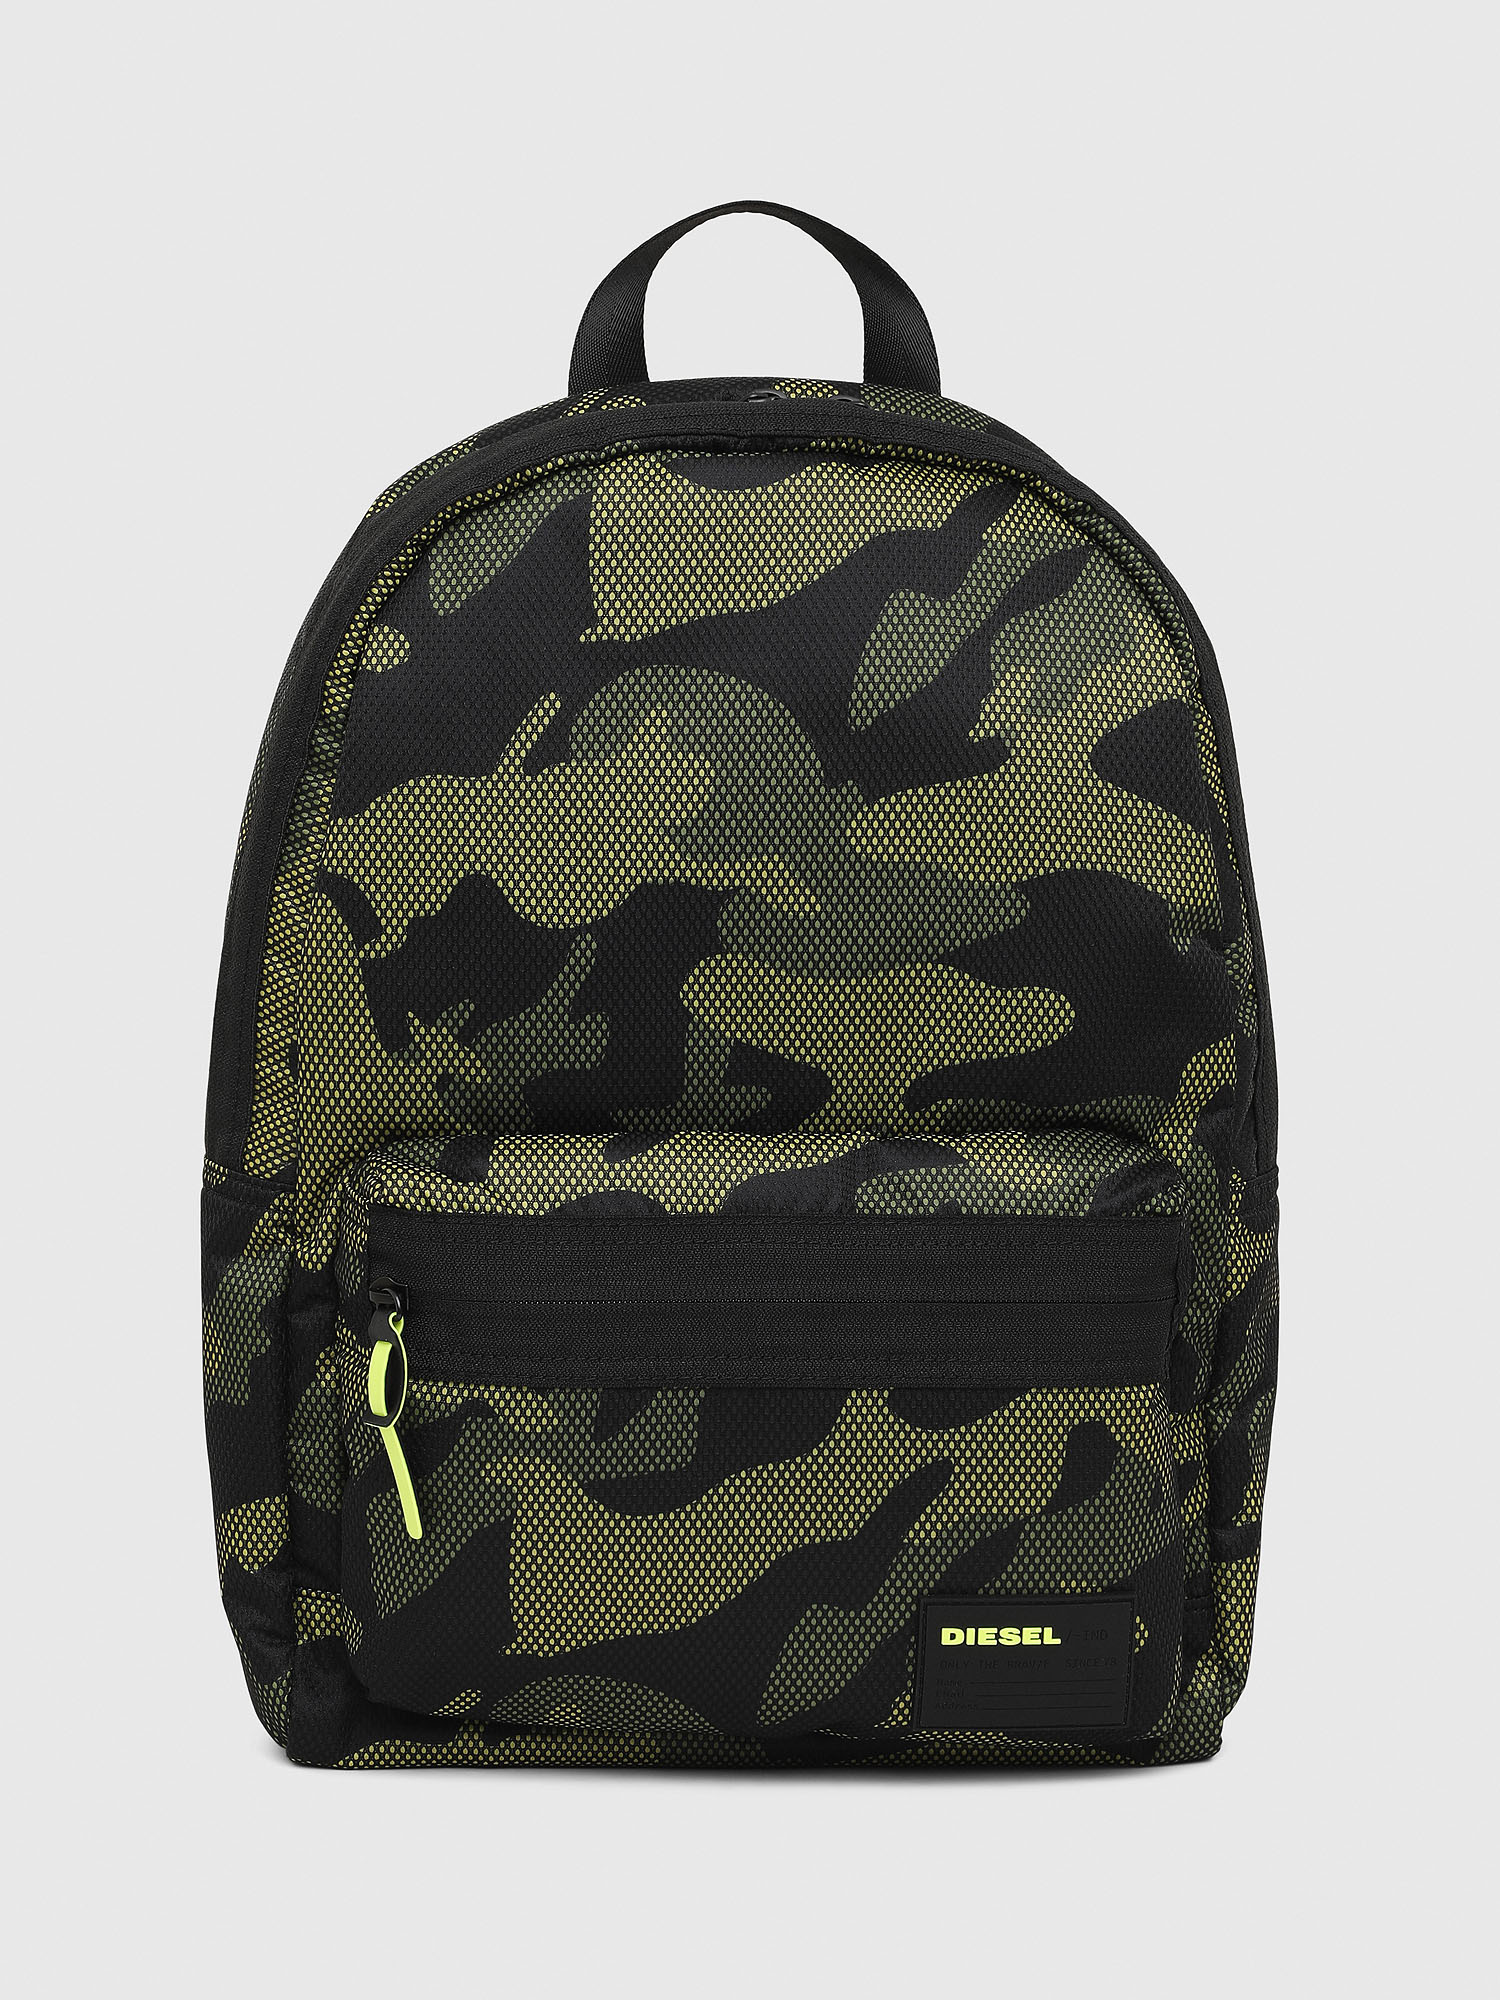 Diesel Backpacks P3042 - Green